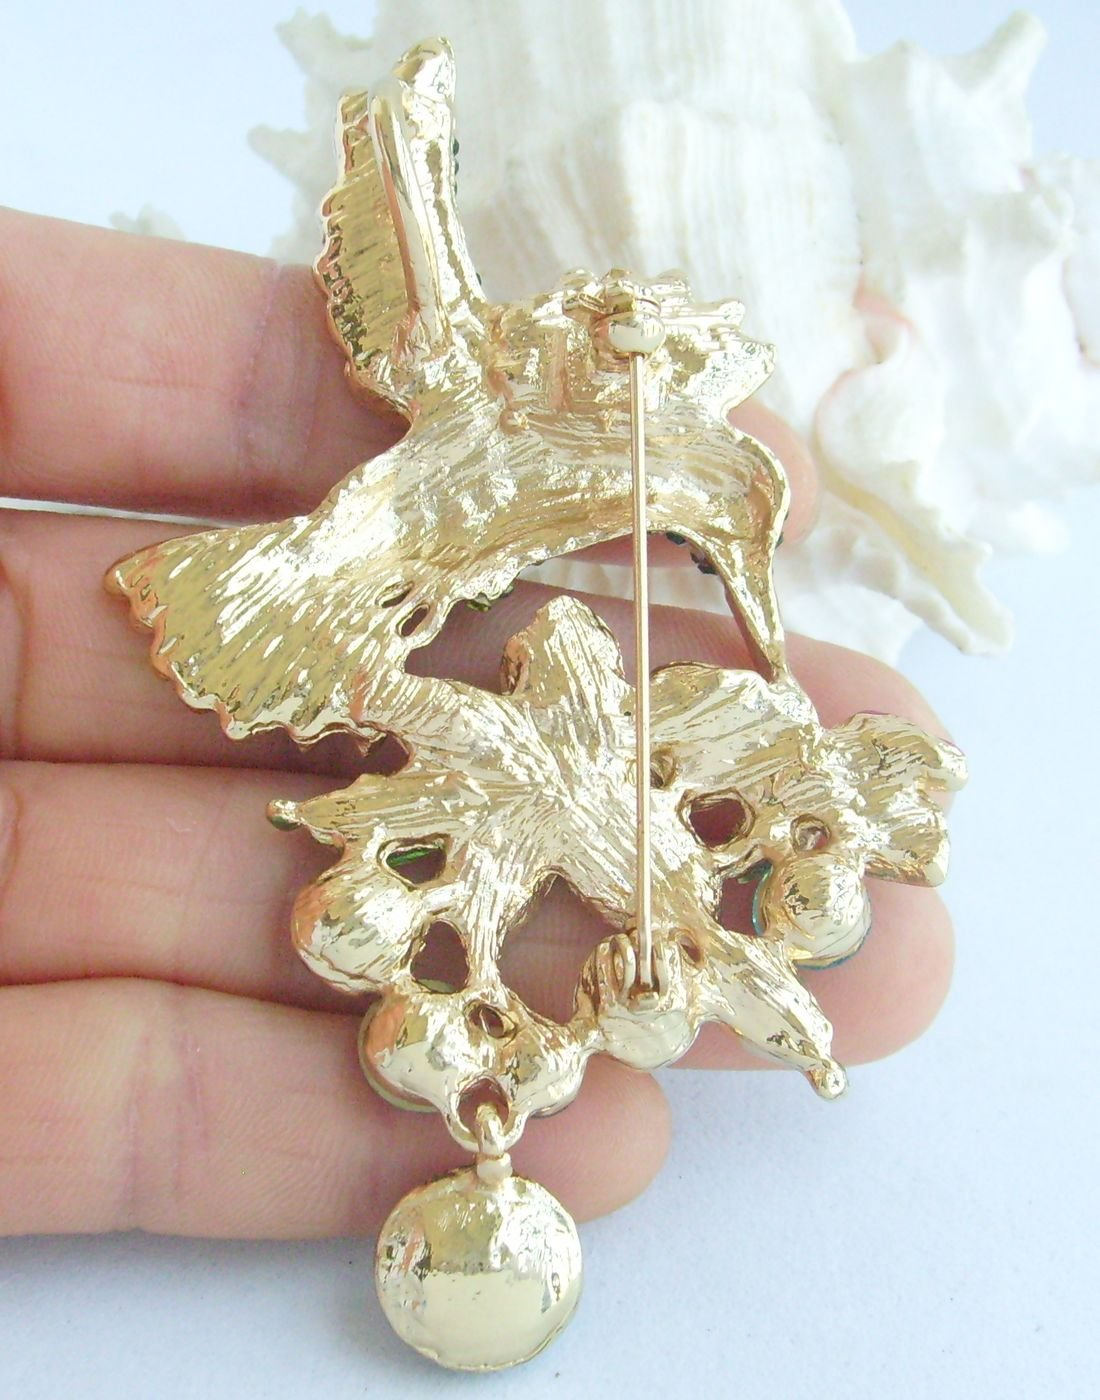 Sindary Pretty 3.54'' Animal Pendant Hummingbird Brooch Pin Rhinestone Crystal BZ6385 (Gold-Tone Red) by Animal Brooch-Sindary Jewelry (Image #5)